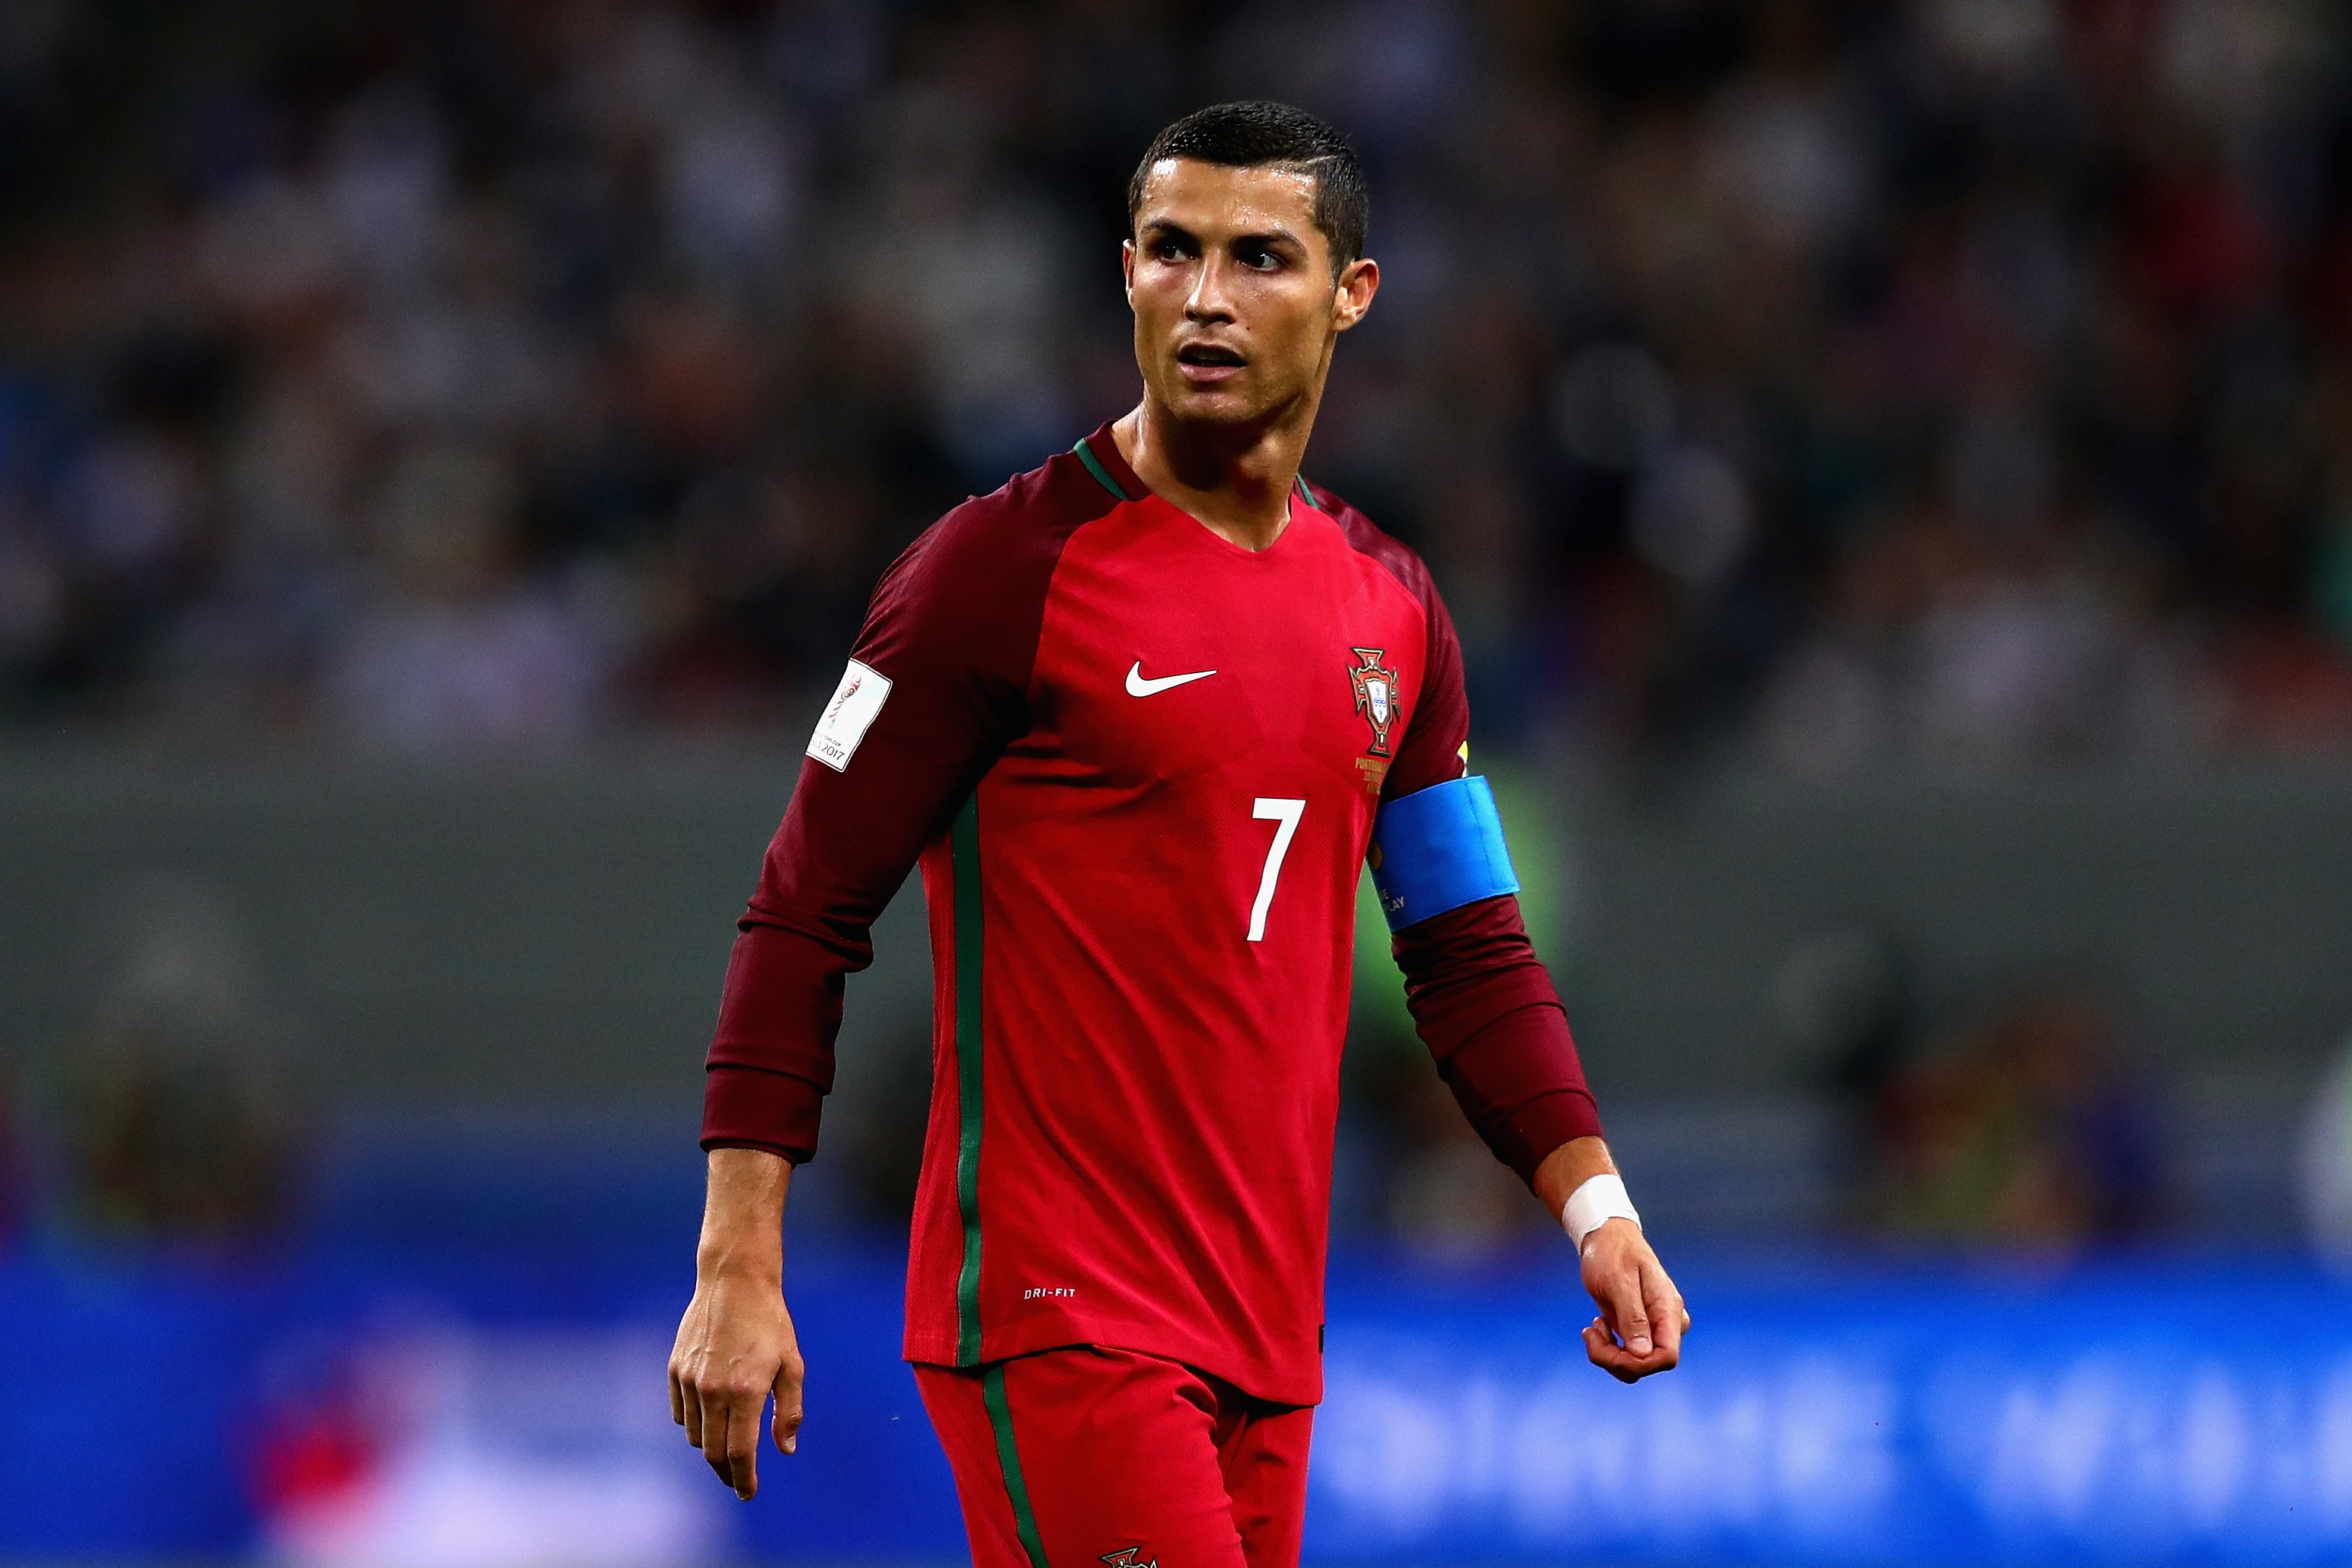 Cristiano Ronaldo of Portugal in action during the FIFA Confederations Cup Russia 2017 Semi-Final between Portugal and Chile at Kazan Arena on June 28, 2017 in Kazan, Russia.